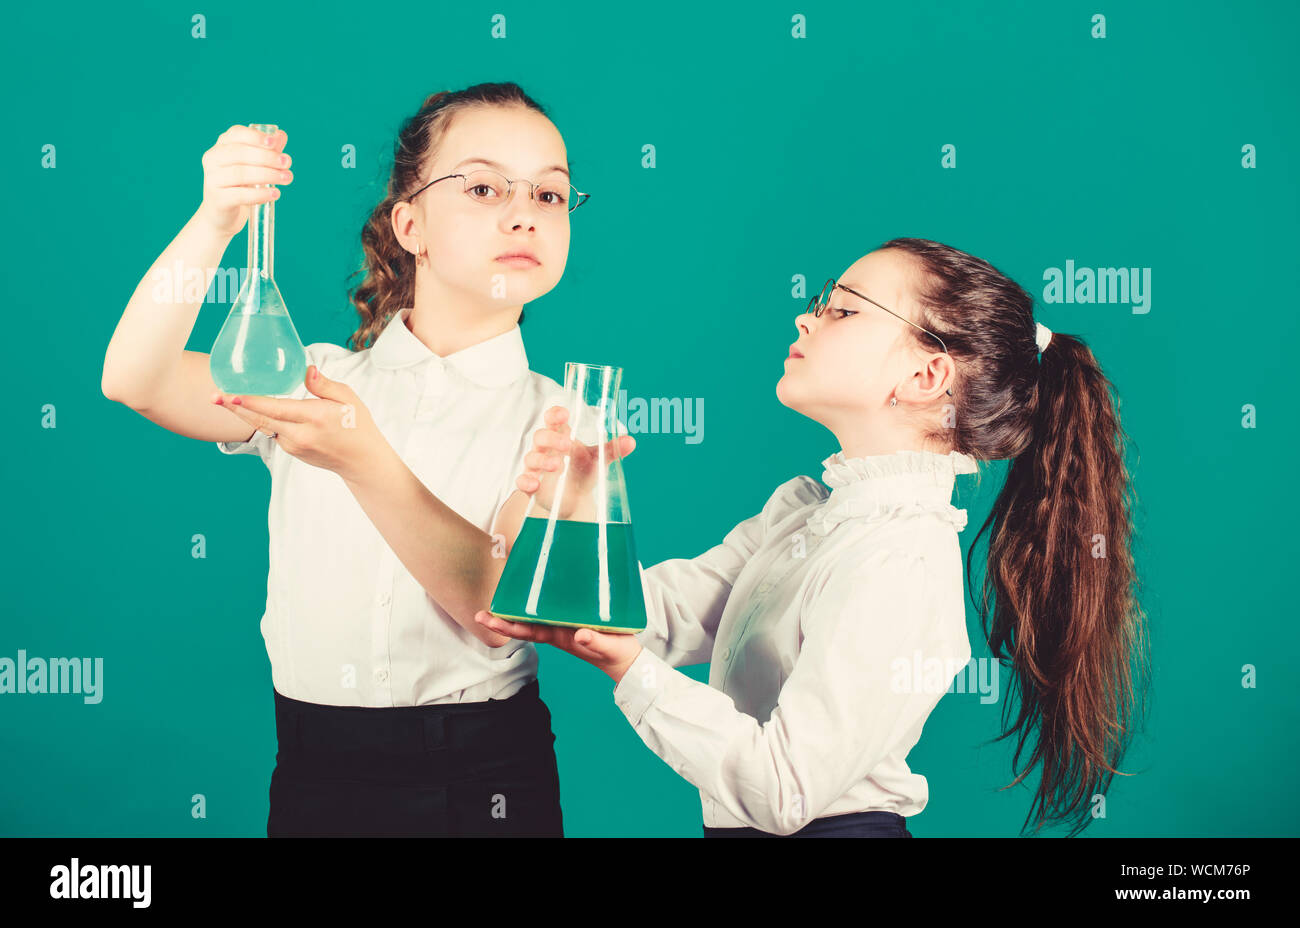 children study chemistry lab. back to school. biology education. little smart girls with testing flask. school kid scientist studying science. Bright minds at work. laboratory work. school work place. Stock Photo